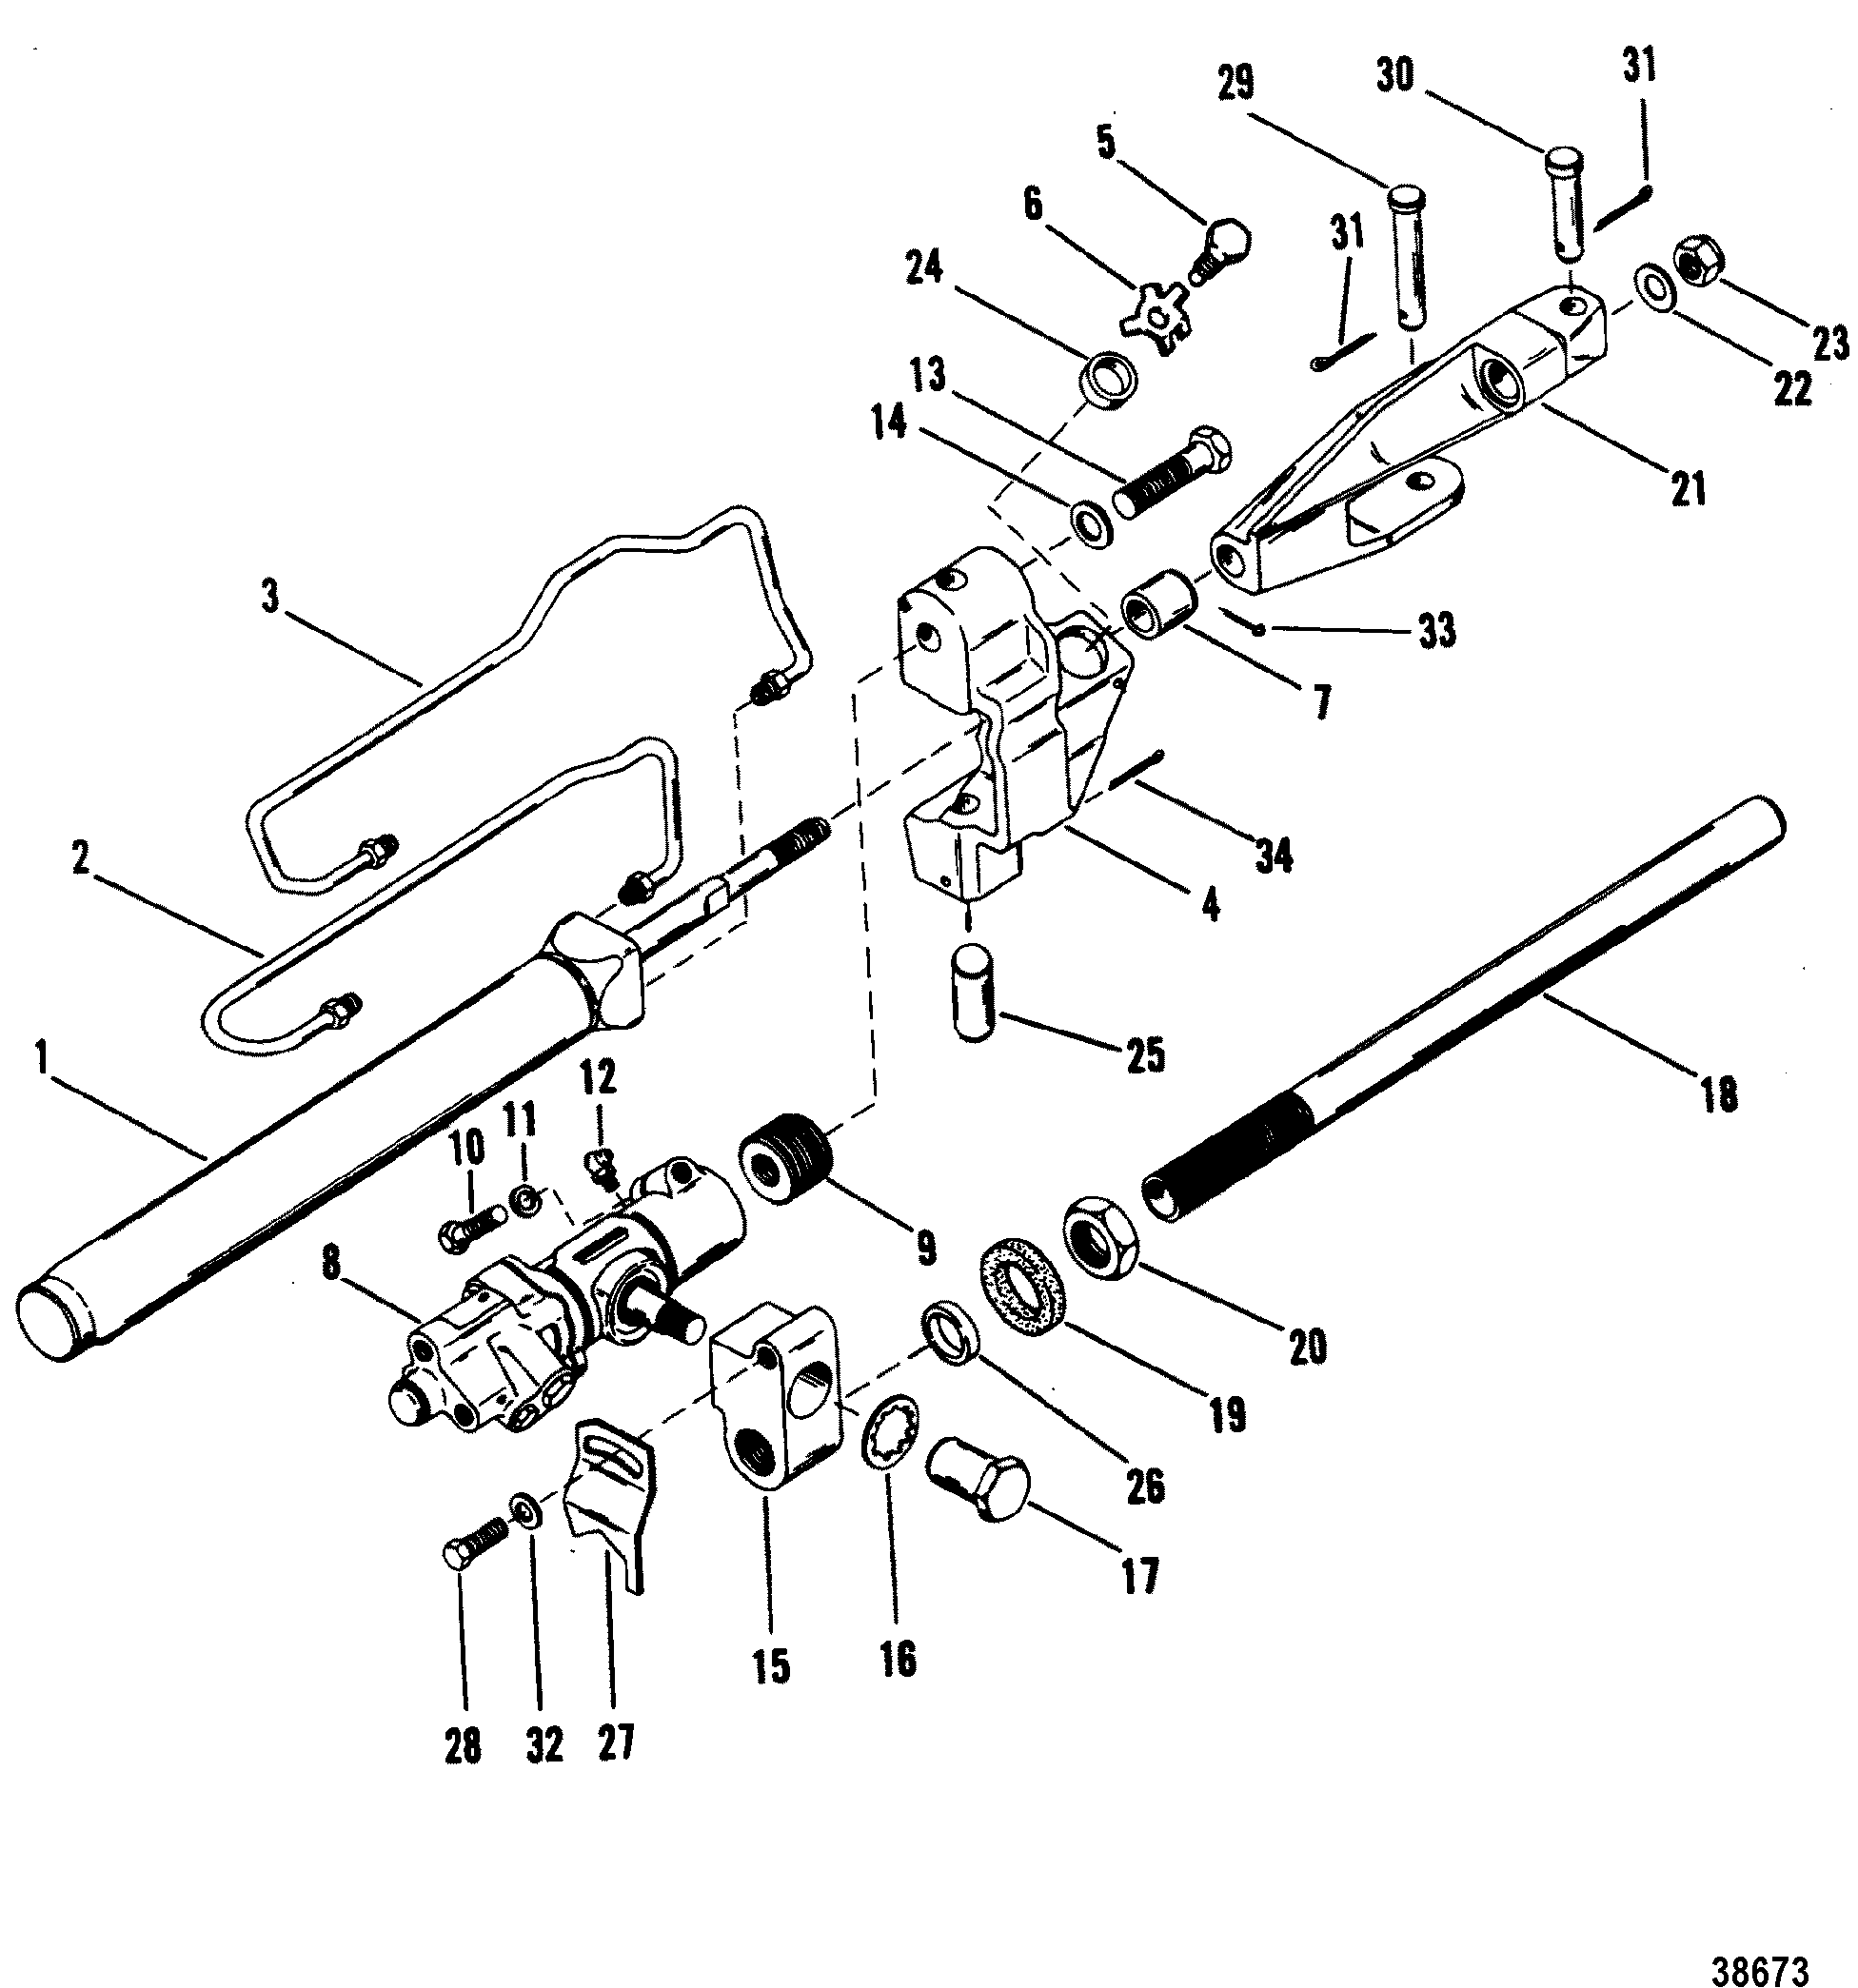 hight resolution of power steering components old design for mercruiser bravo i ii iii sterndrive and transom assembly